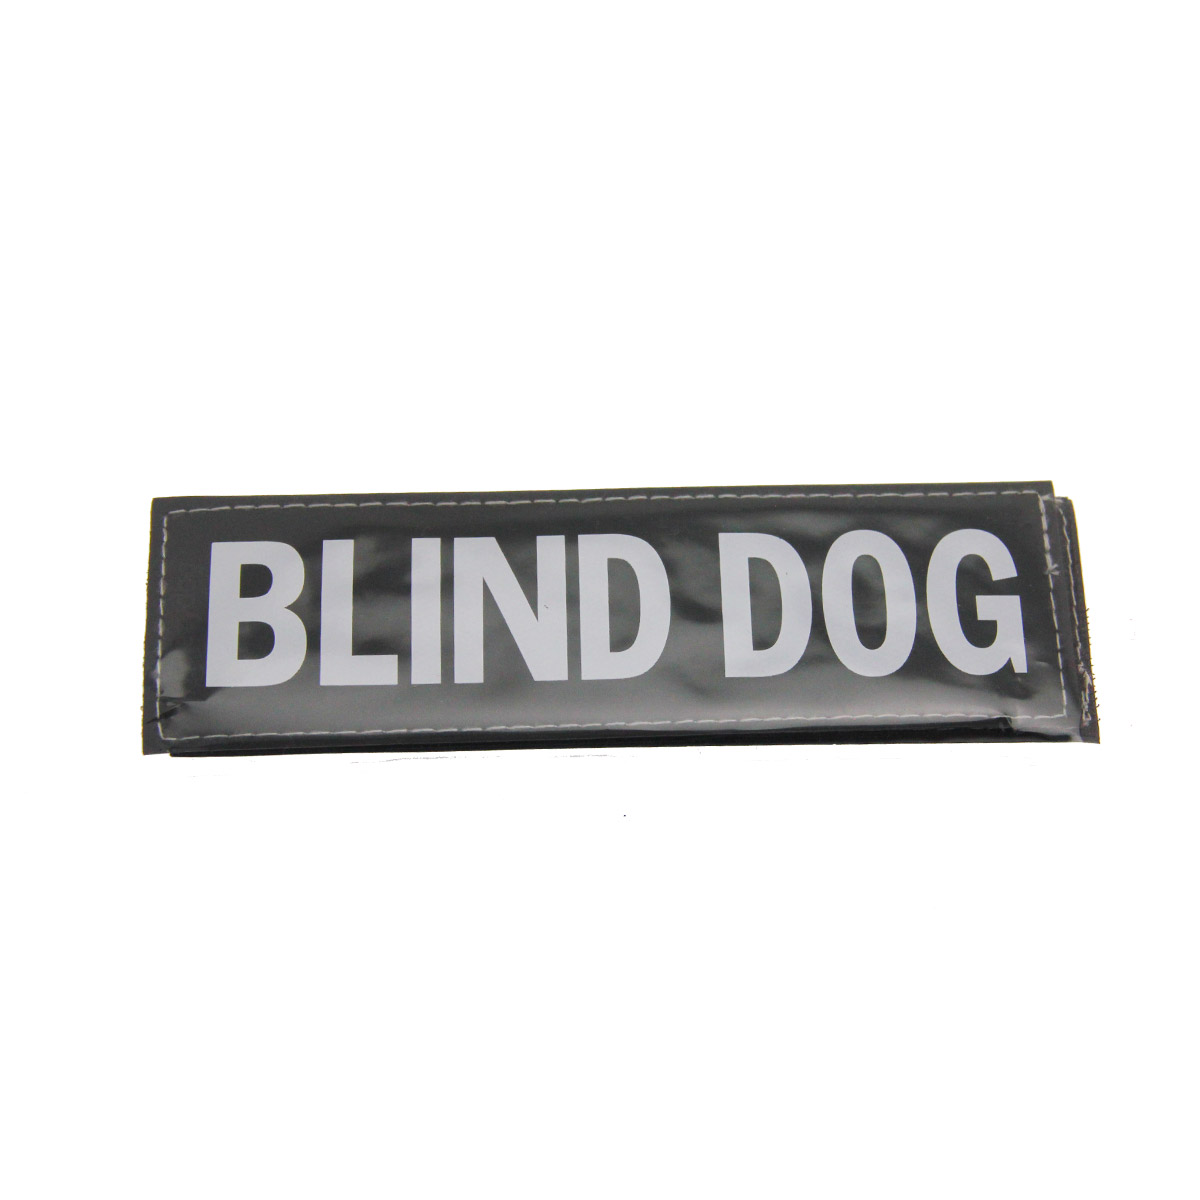 EzyDog Side Patches for Convert Harness - Blind Dog